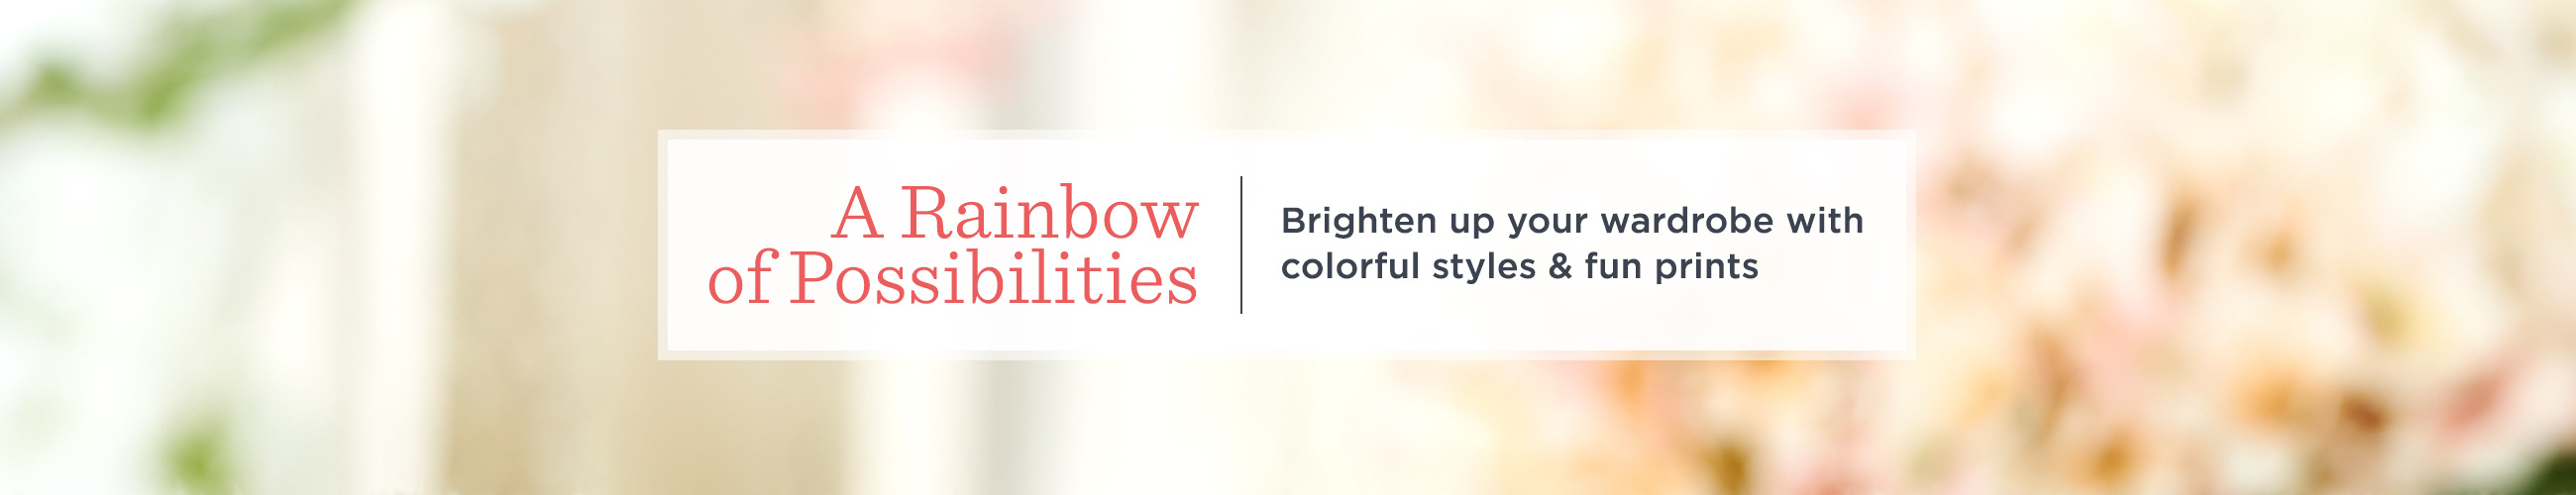 A Rainbow of Possibilities   Brighten up your wardrobe with colorful styles & fun prints